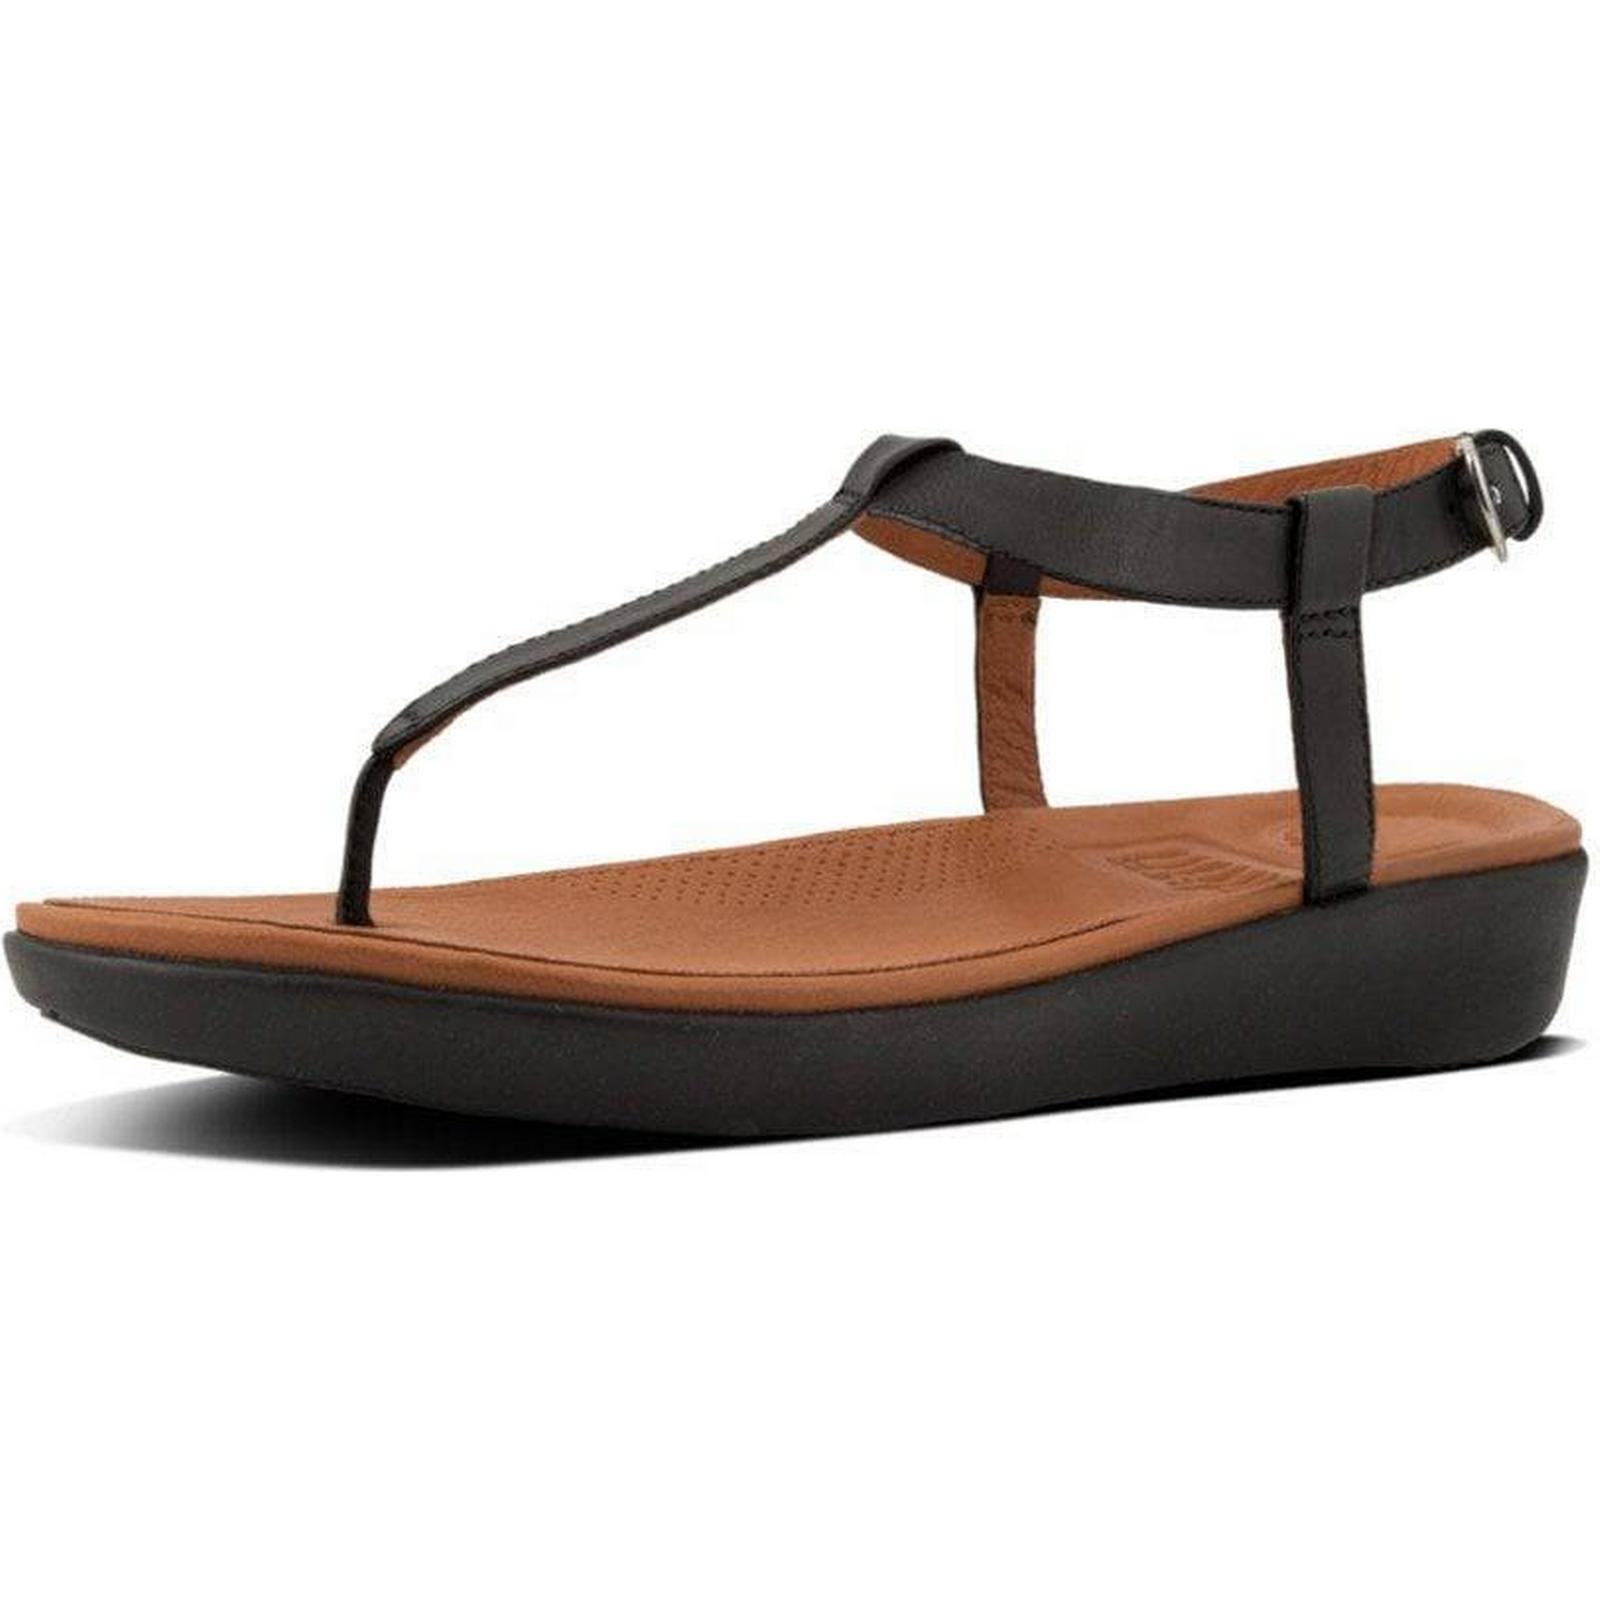 FitFlop TIA TOE TOE-THONG FITFLOP L36-001 TIA TOE TIA THONG Size: 6.5, Colour: 62887a